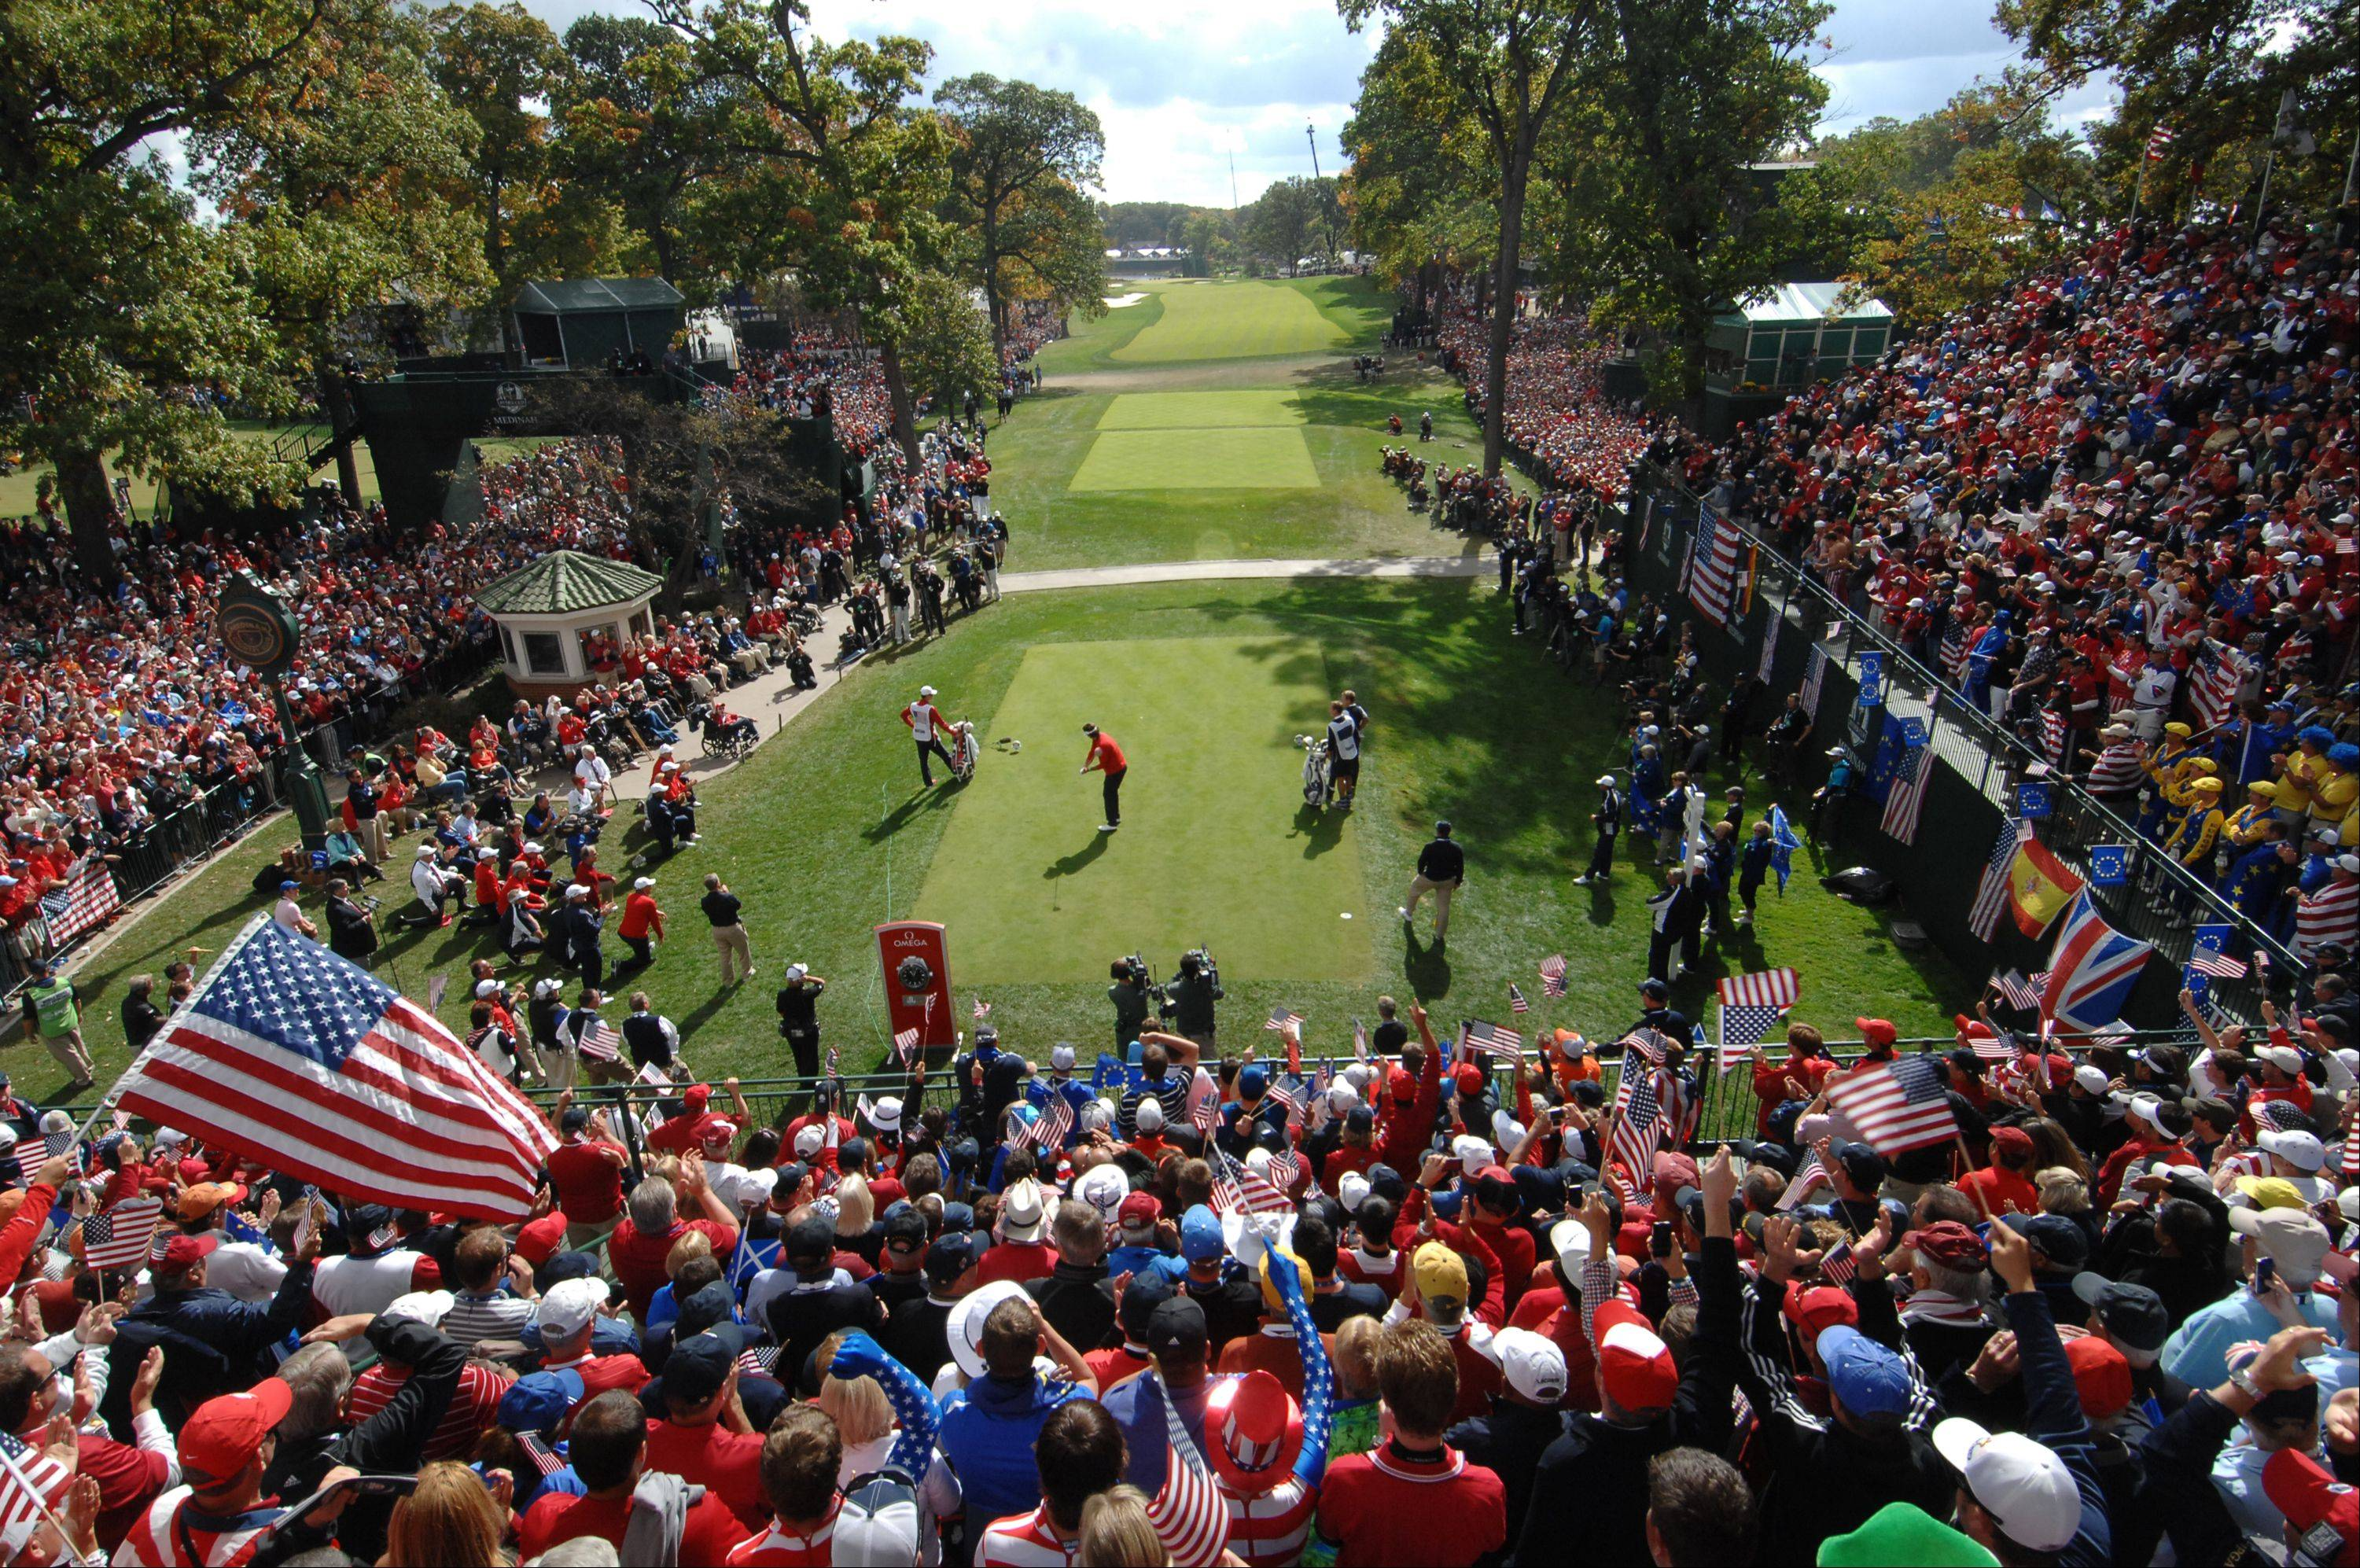 Fans for both the US and European teams were out in force at the first tee Sunday during the final day of the 2012 Ryder Cup at Medinah Country Club. Here, Bubba Watson tees off to start the final round of play.